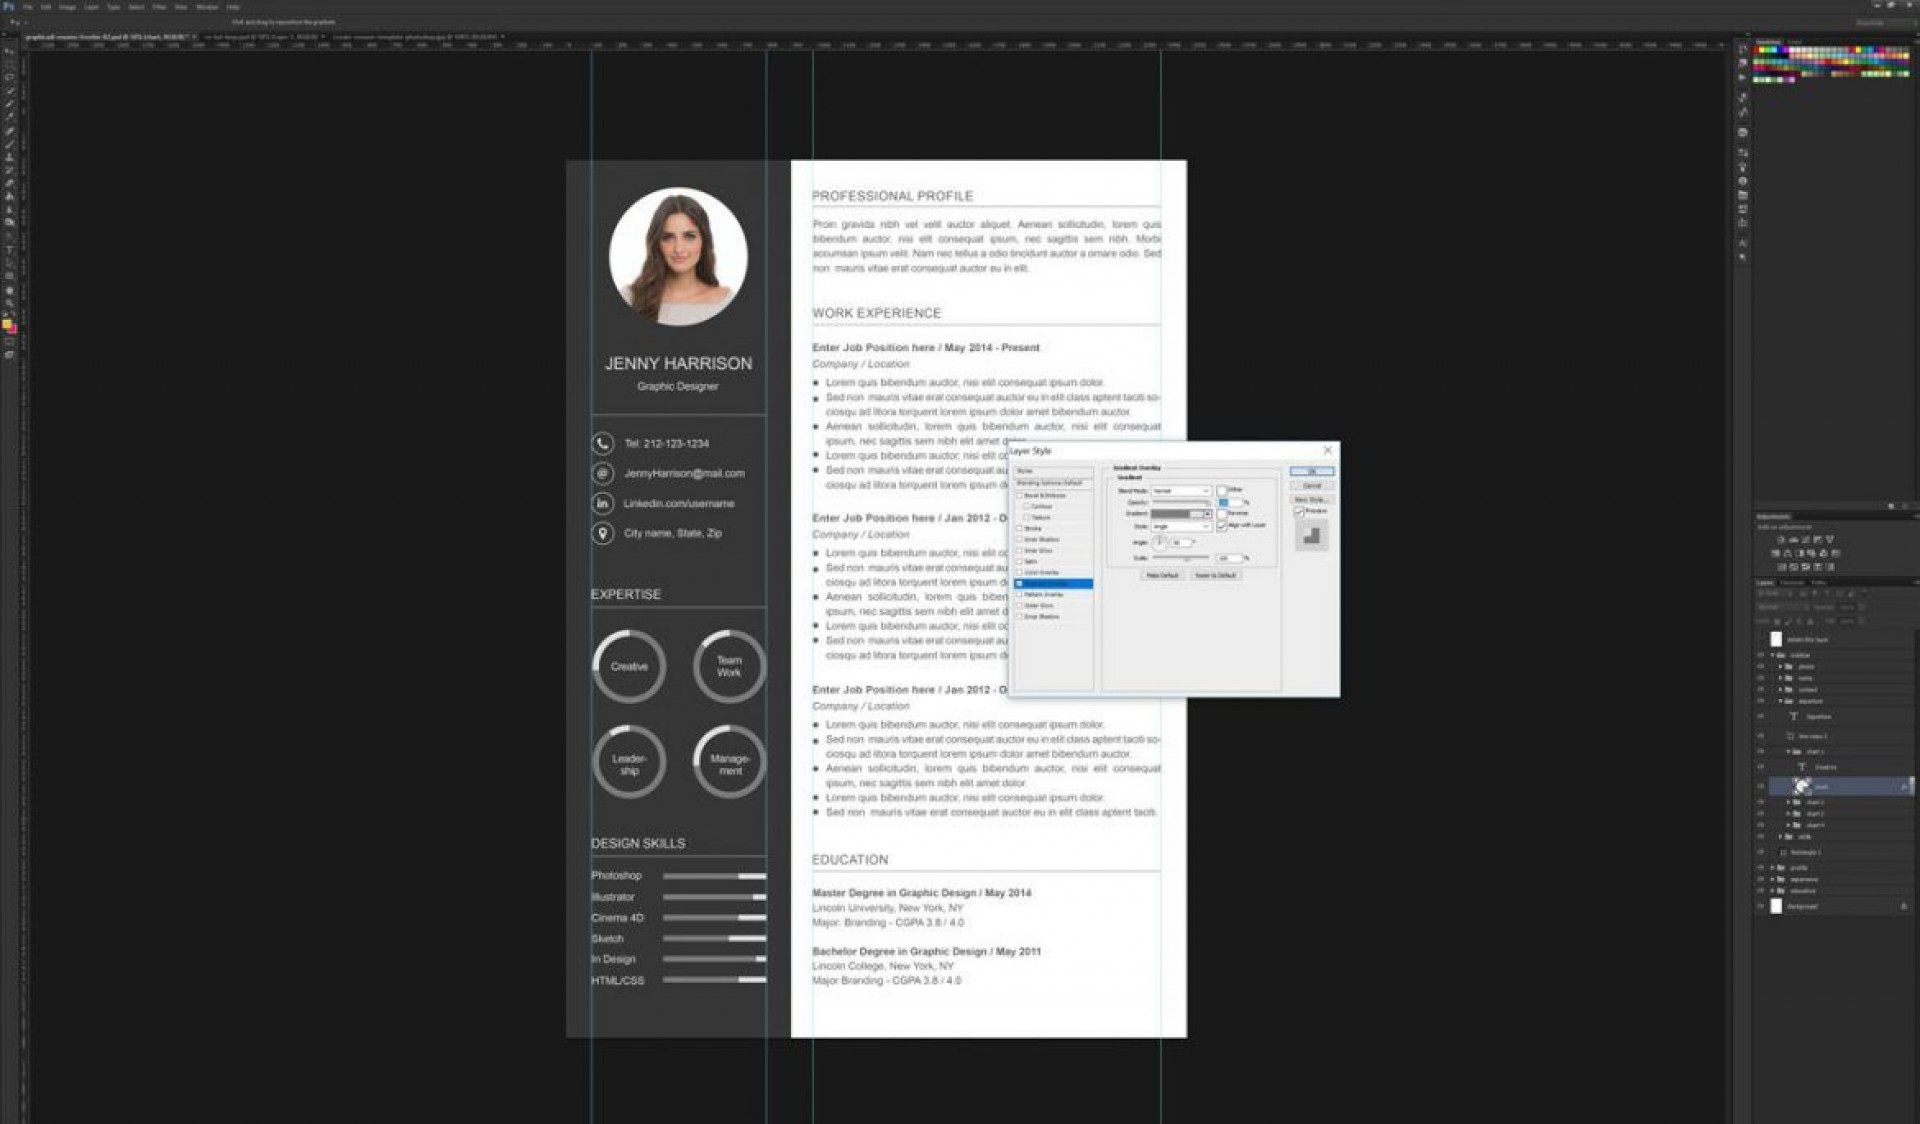 006 Astounding How To Create A Resume Template In Photoshop Idea 1920